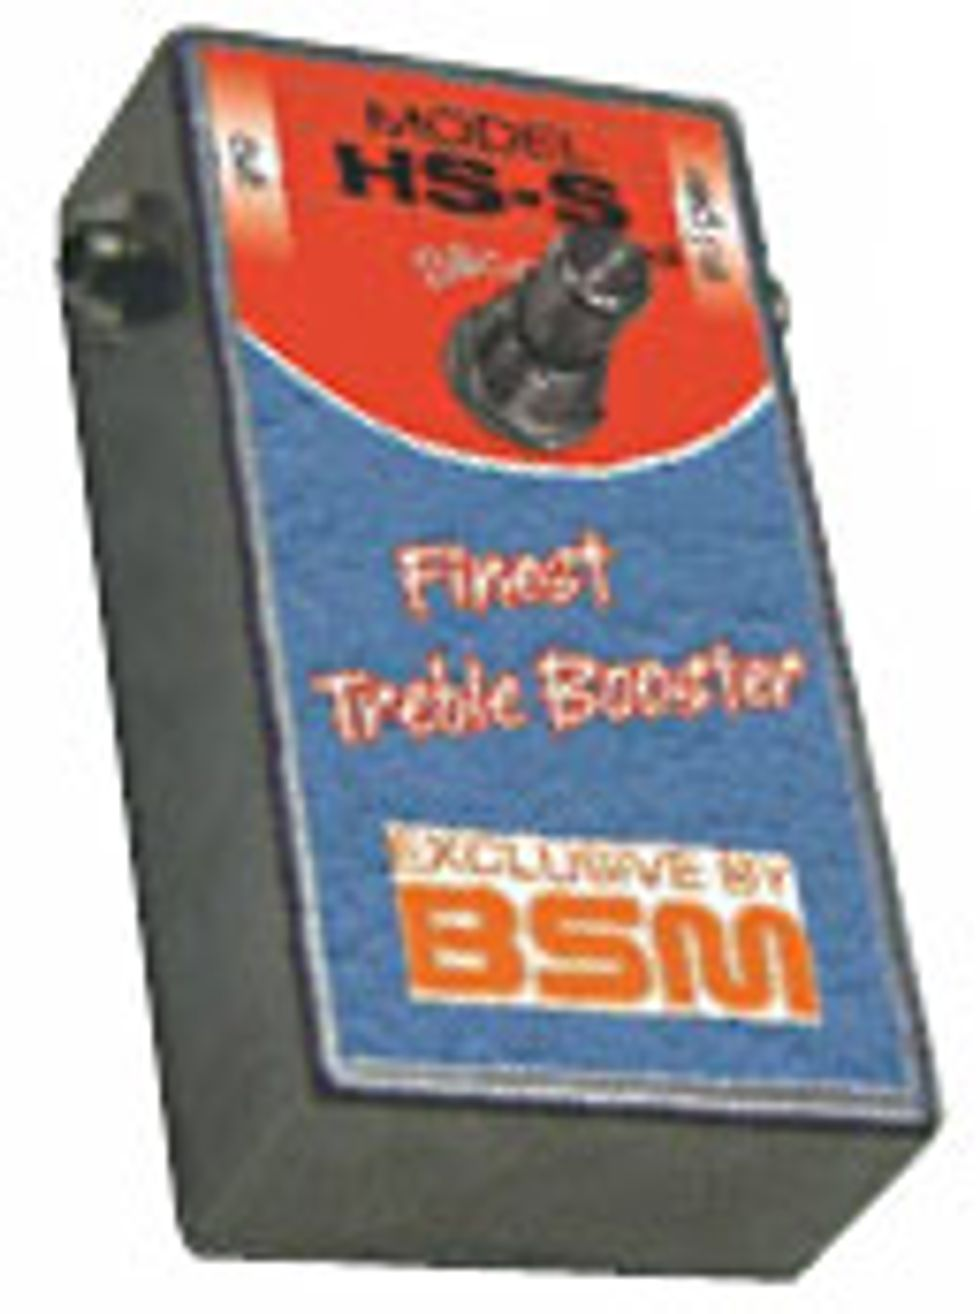 BSM HS-S Treble Booster